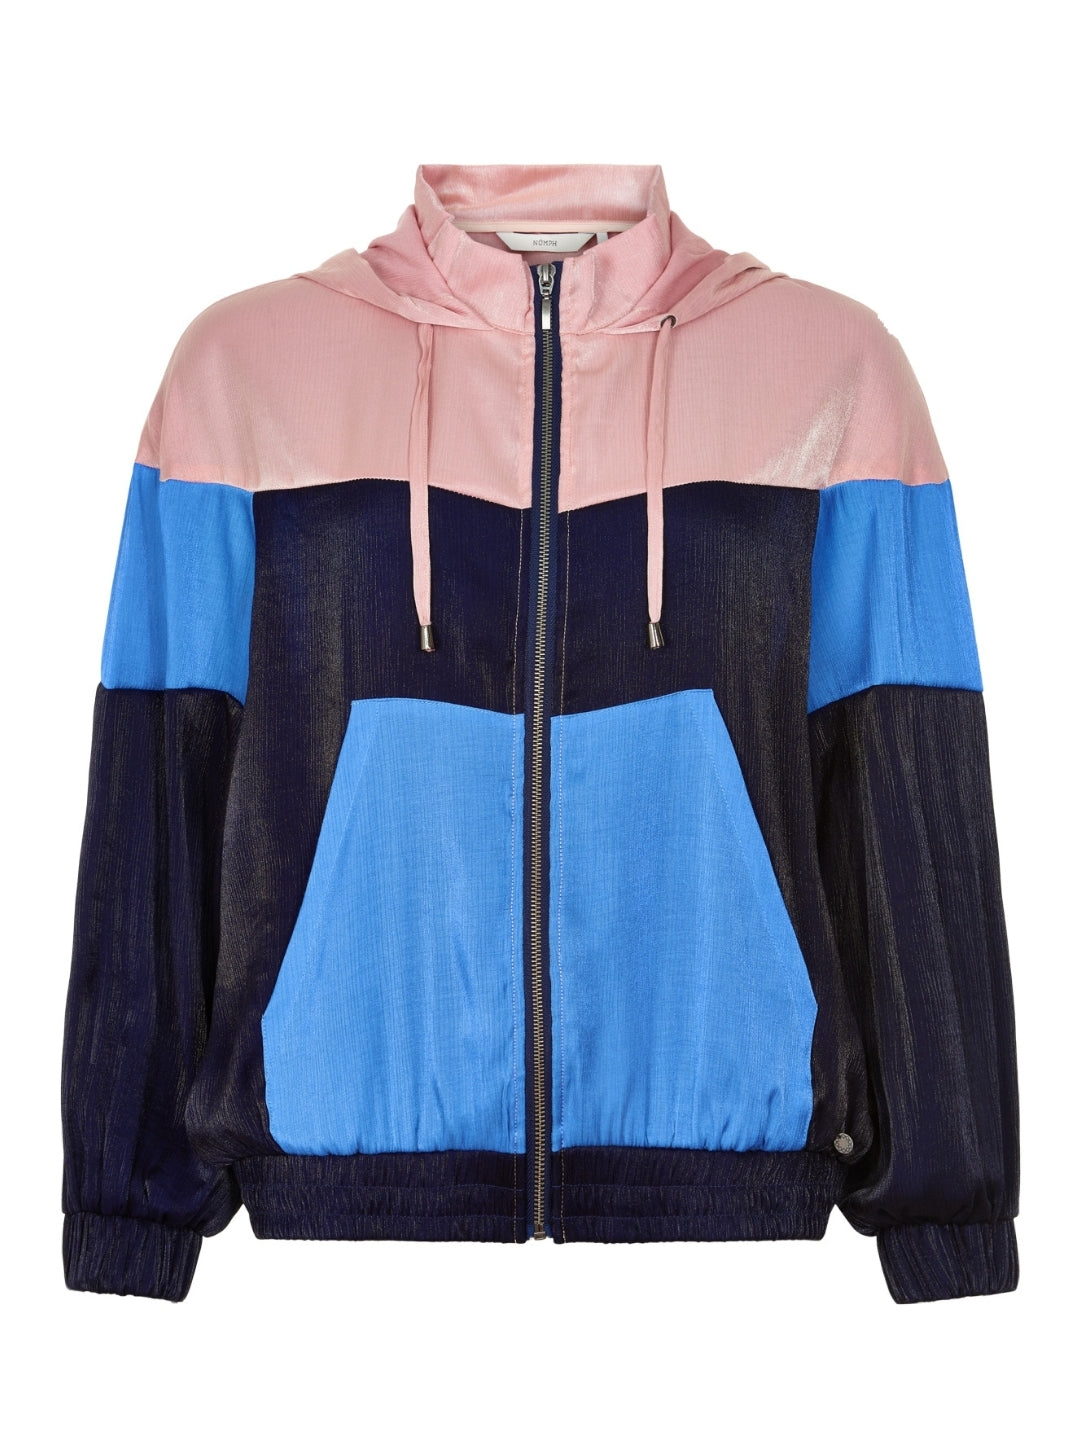 Pink and Blue Zip Up Hoody by Nümph